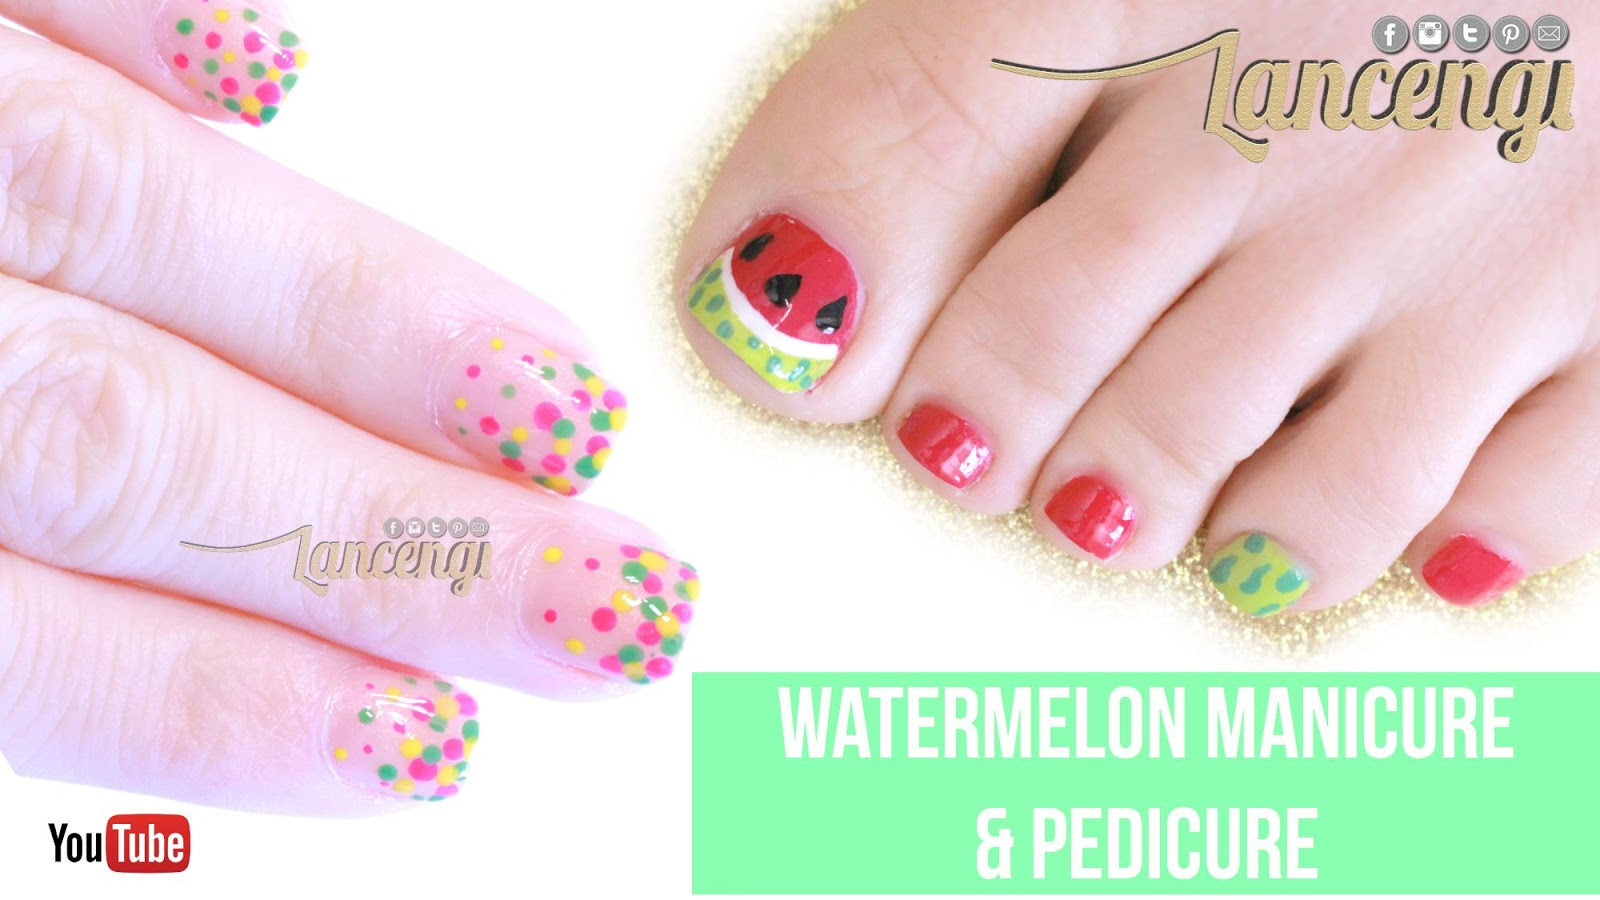 Lancengi Watermelon Nail Art Designs For Toes National Watermelon